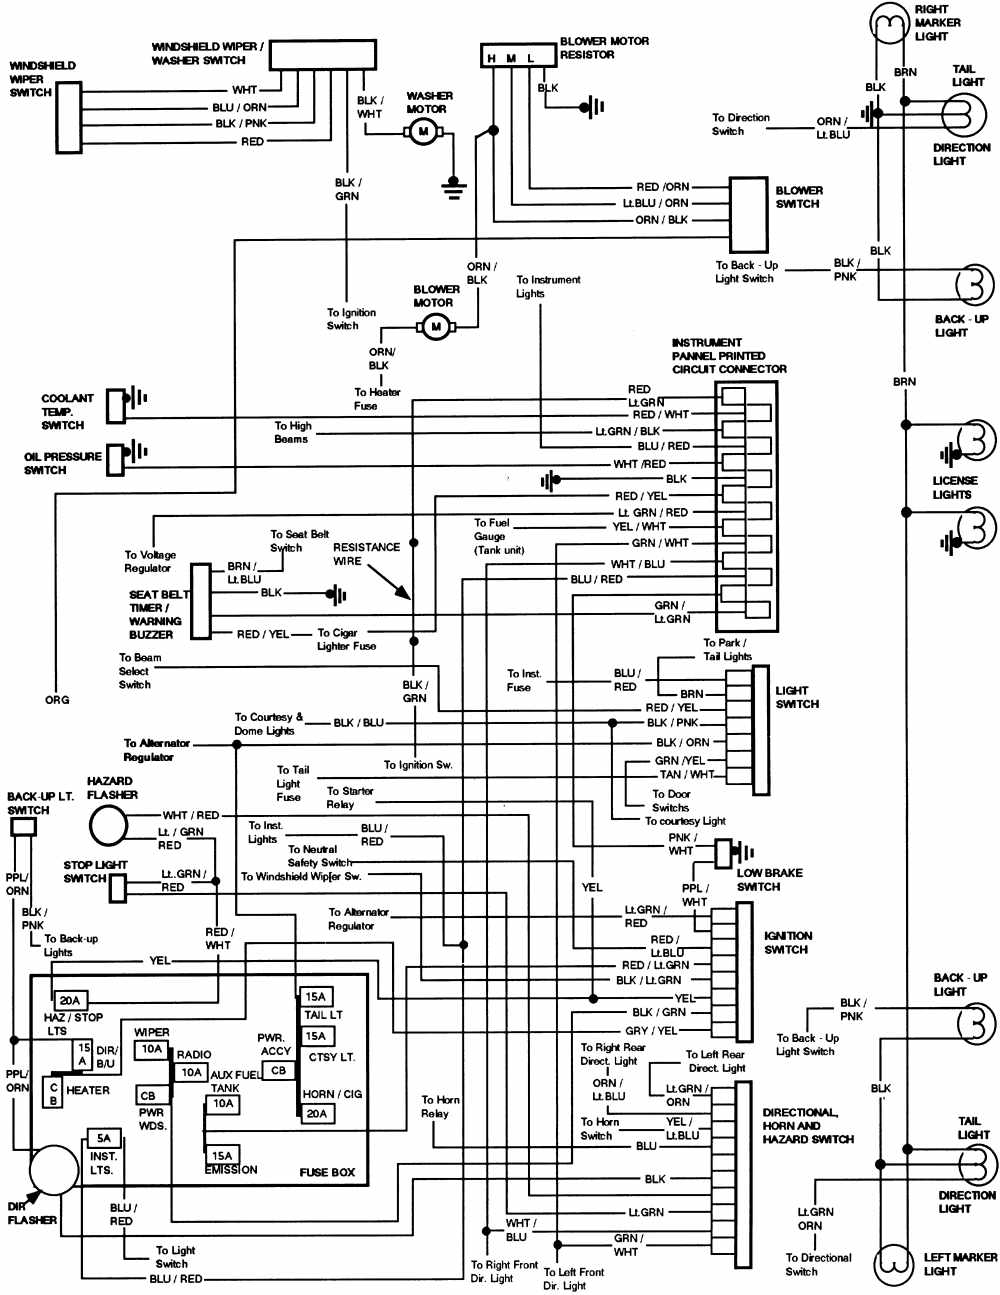 96 dodge ram 2500 wiring diagram